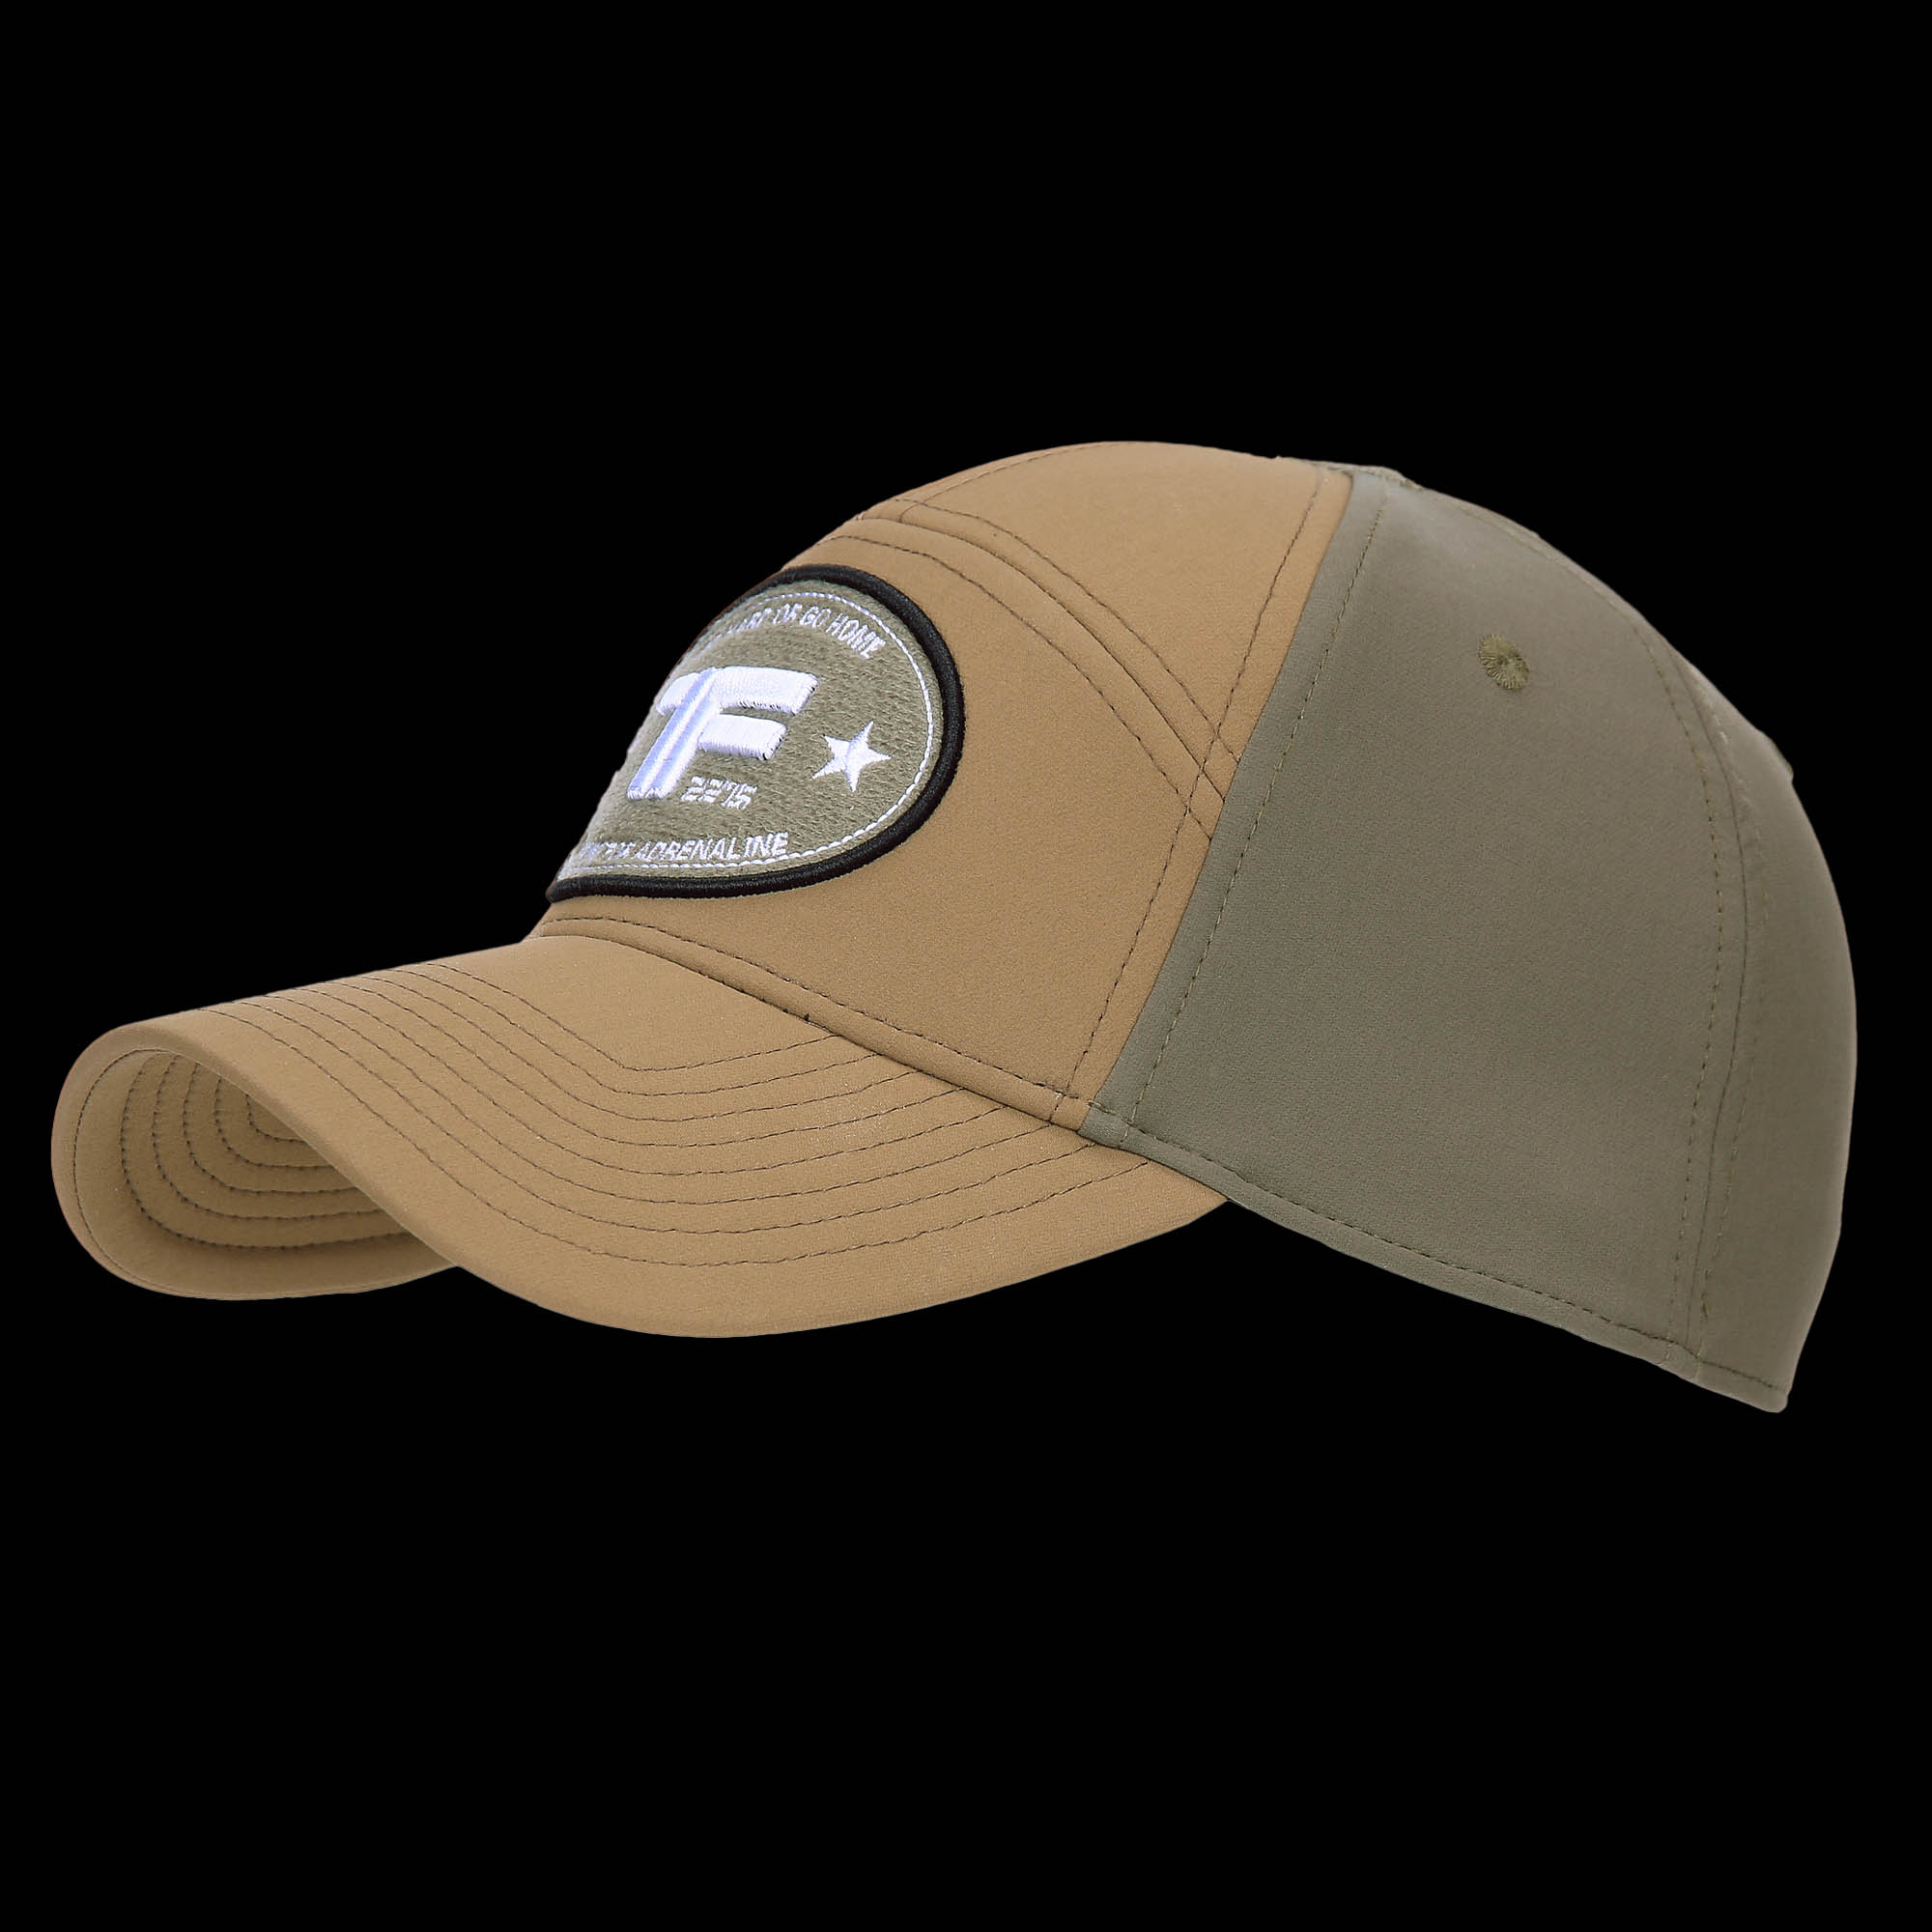 TF-2215 Soft Shell Cap Coyote / Ranger Green